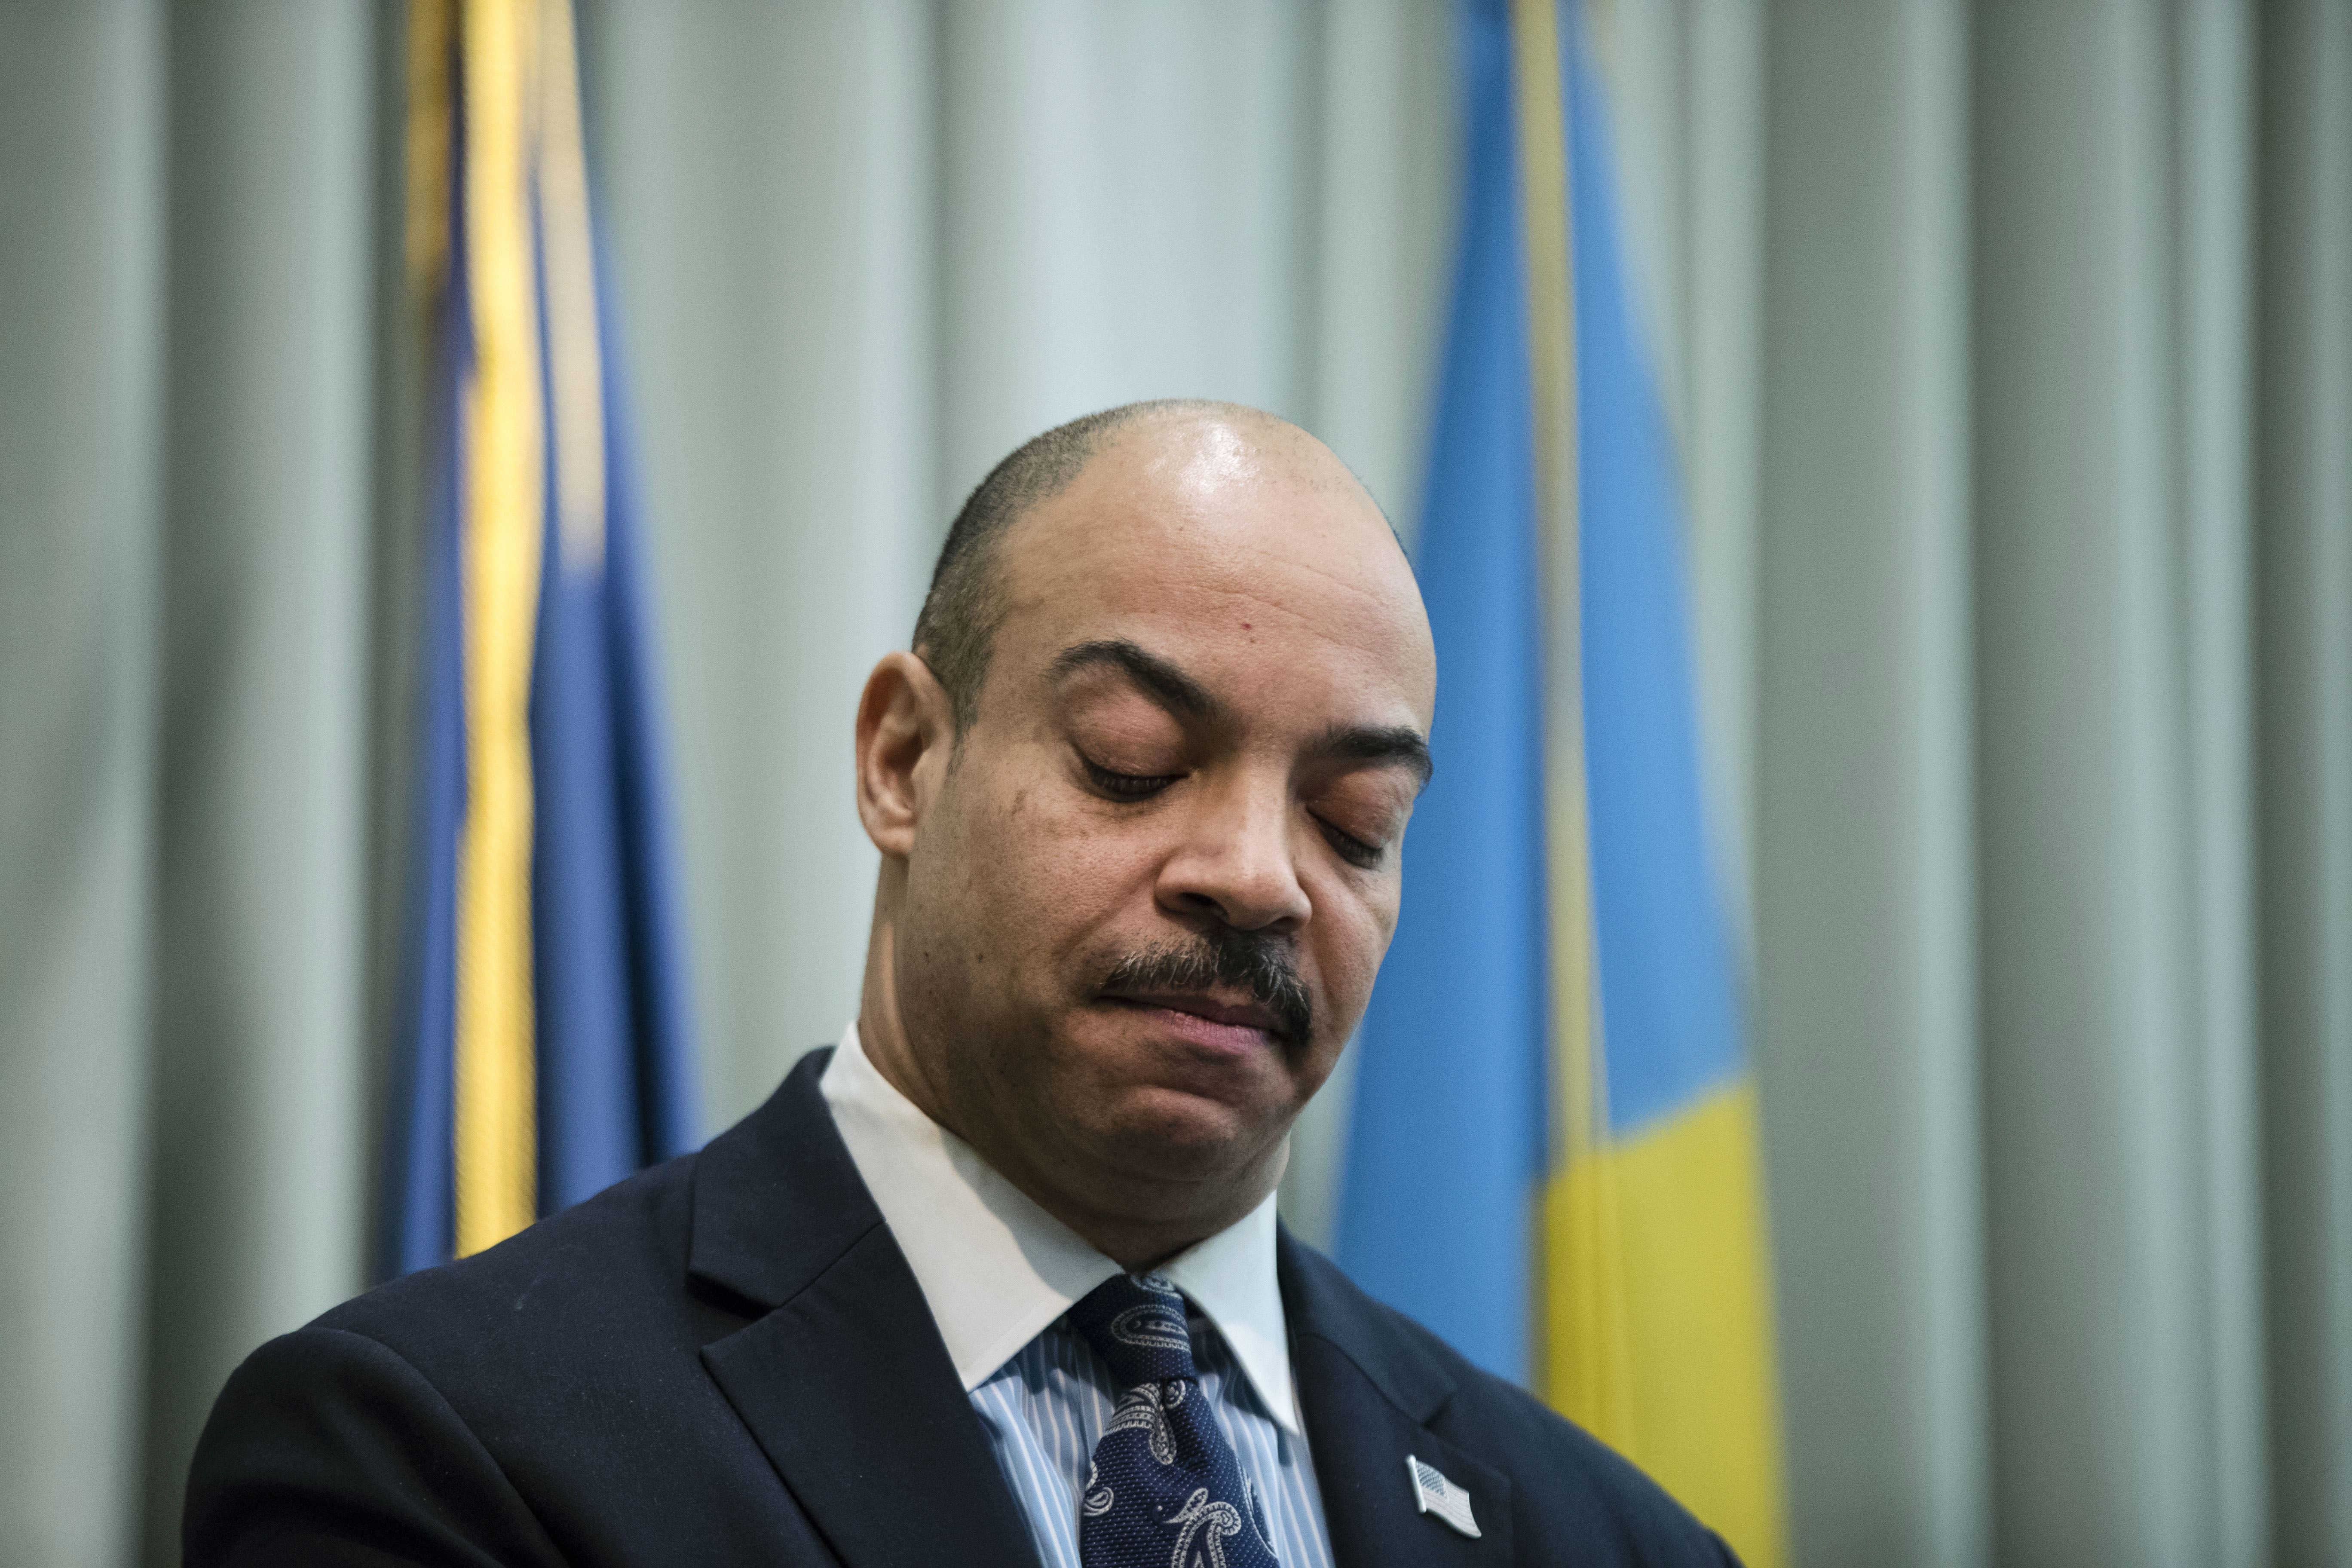 Philadelphia District Attorney Seth Williams speaks during a news conference in Philadelphia on Feb. 10, 2017.